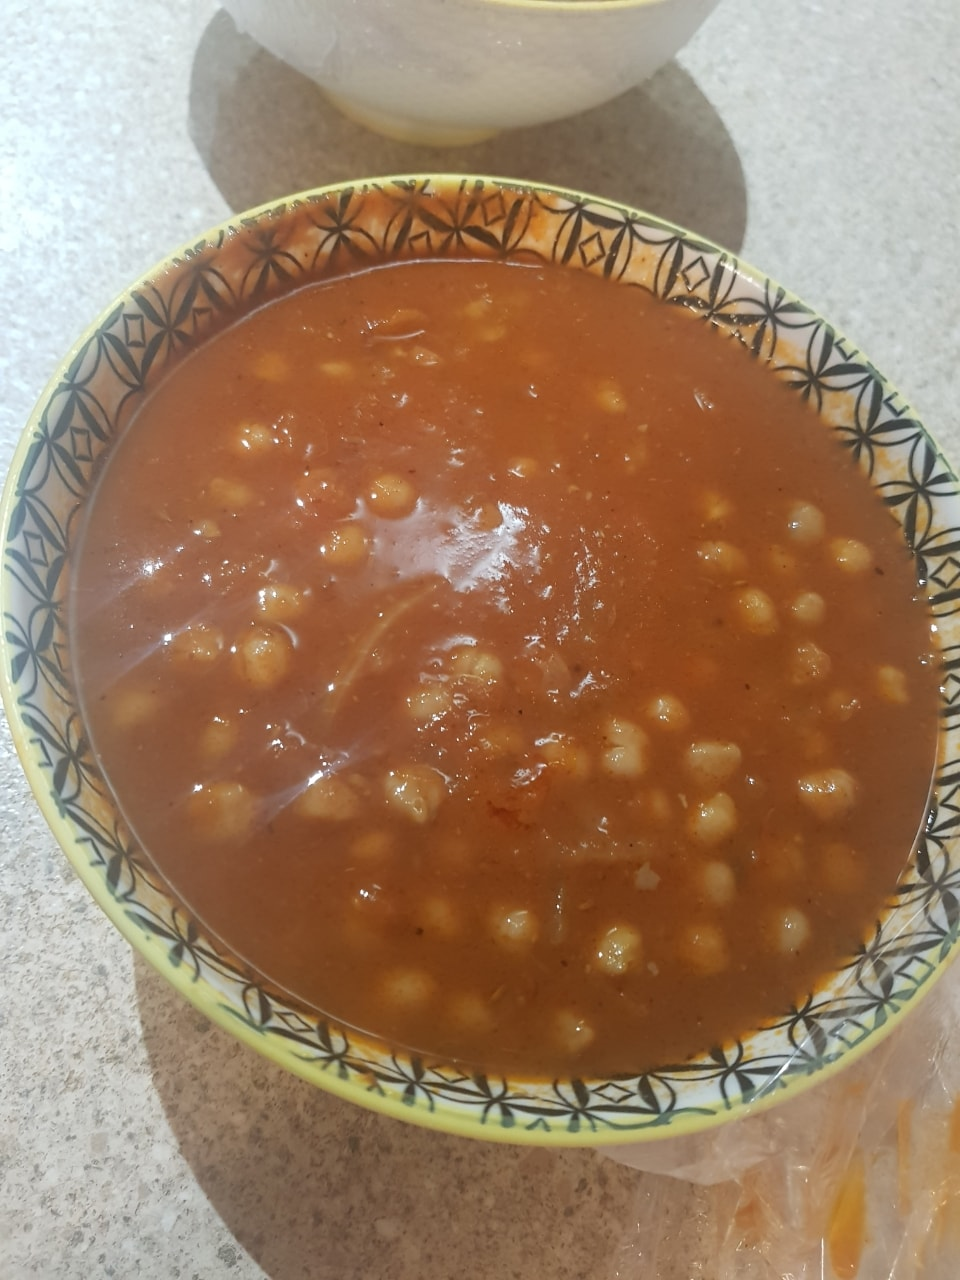 Home made curries : dal makhani (vegan) and chickpeas curry (vegan) and chicken curry